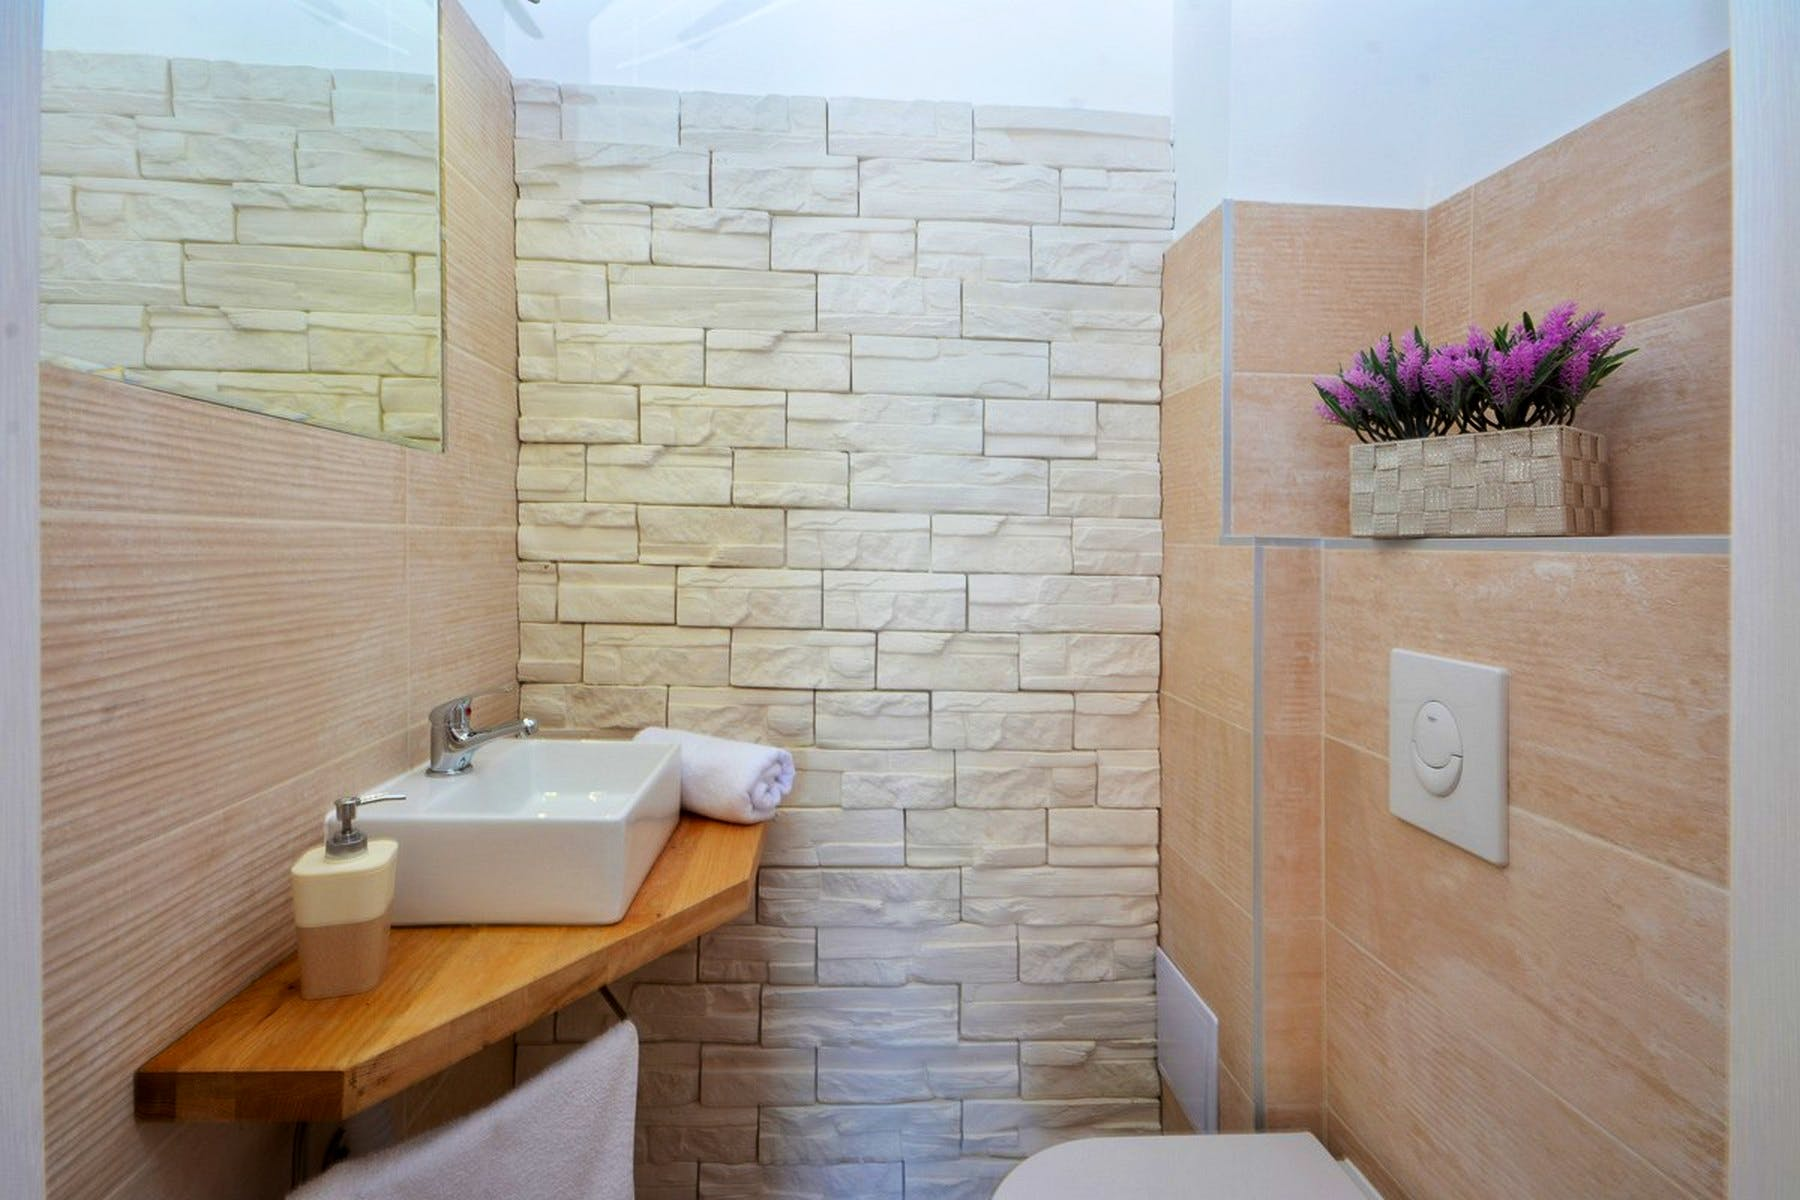 Bathroom with stone details